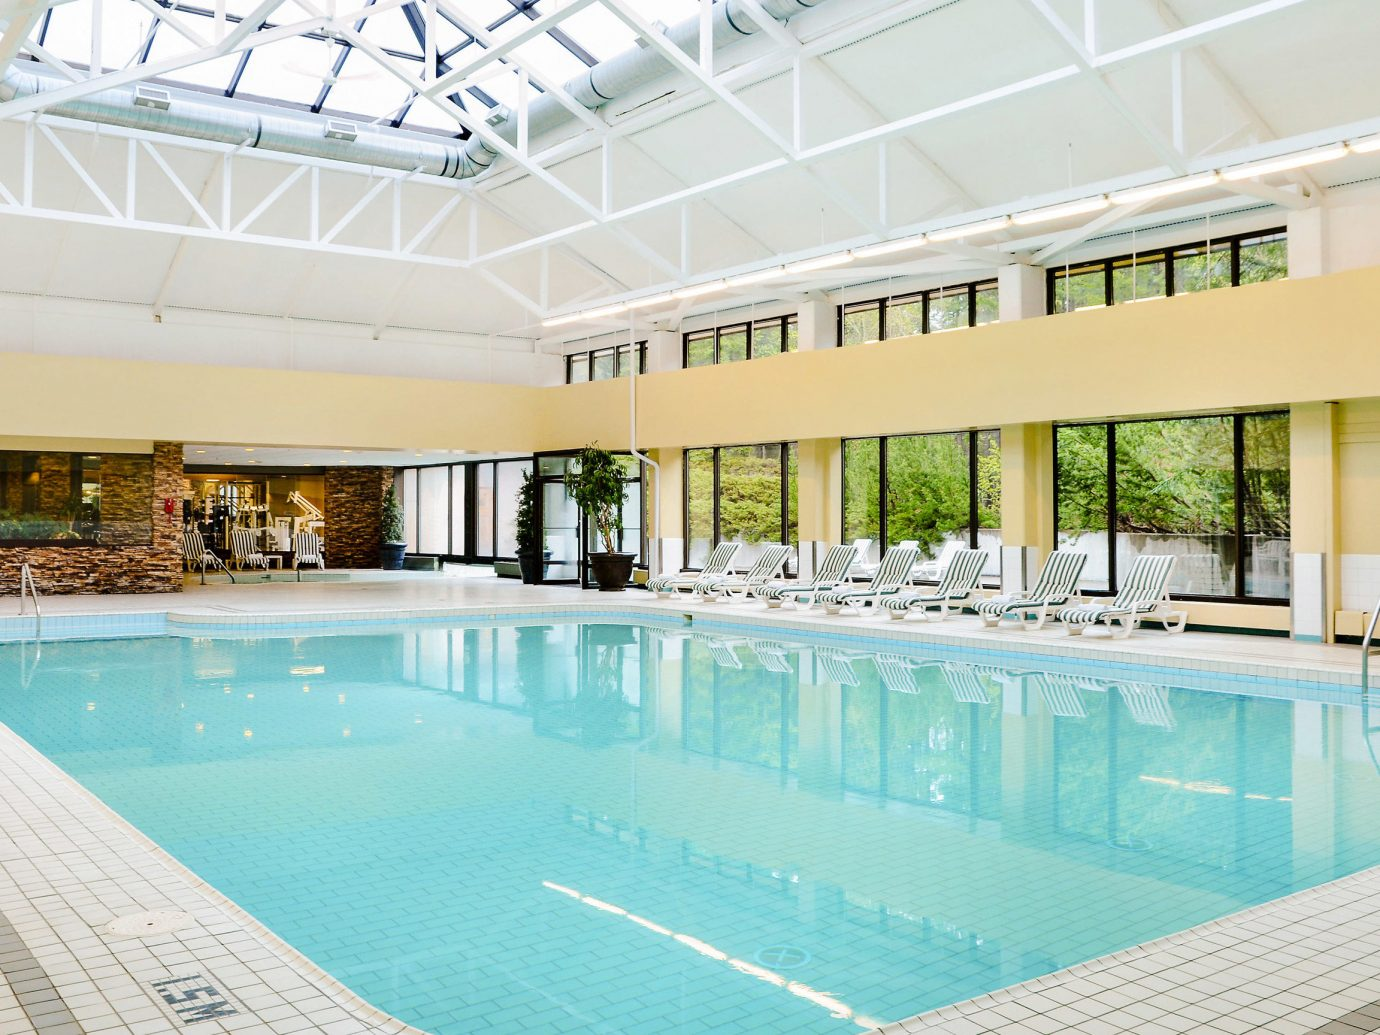 Alberta Boutique Hotels Canada Hotels swimming pool leisure property leisure centre Resort real estate estate hotel condominium resort town apartment recreation amenity vacation